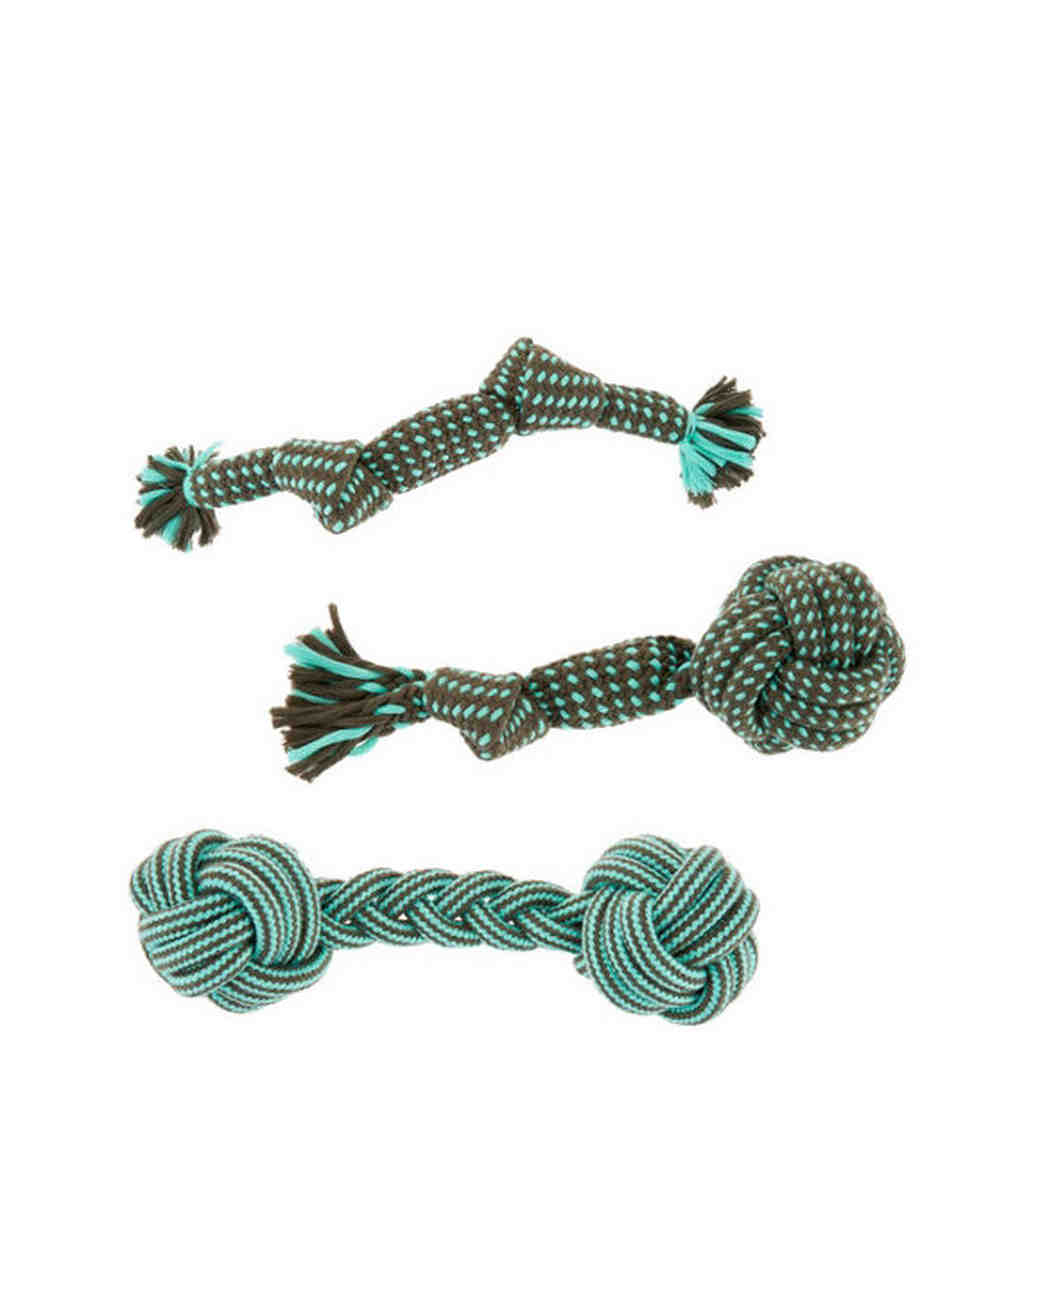 Pet Gift Guide, Martha Stewart Green Rope Toys